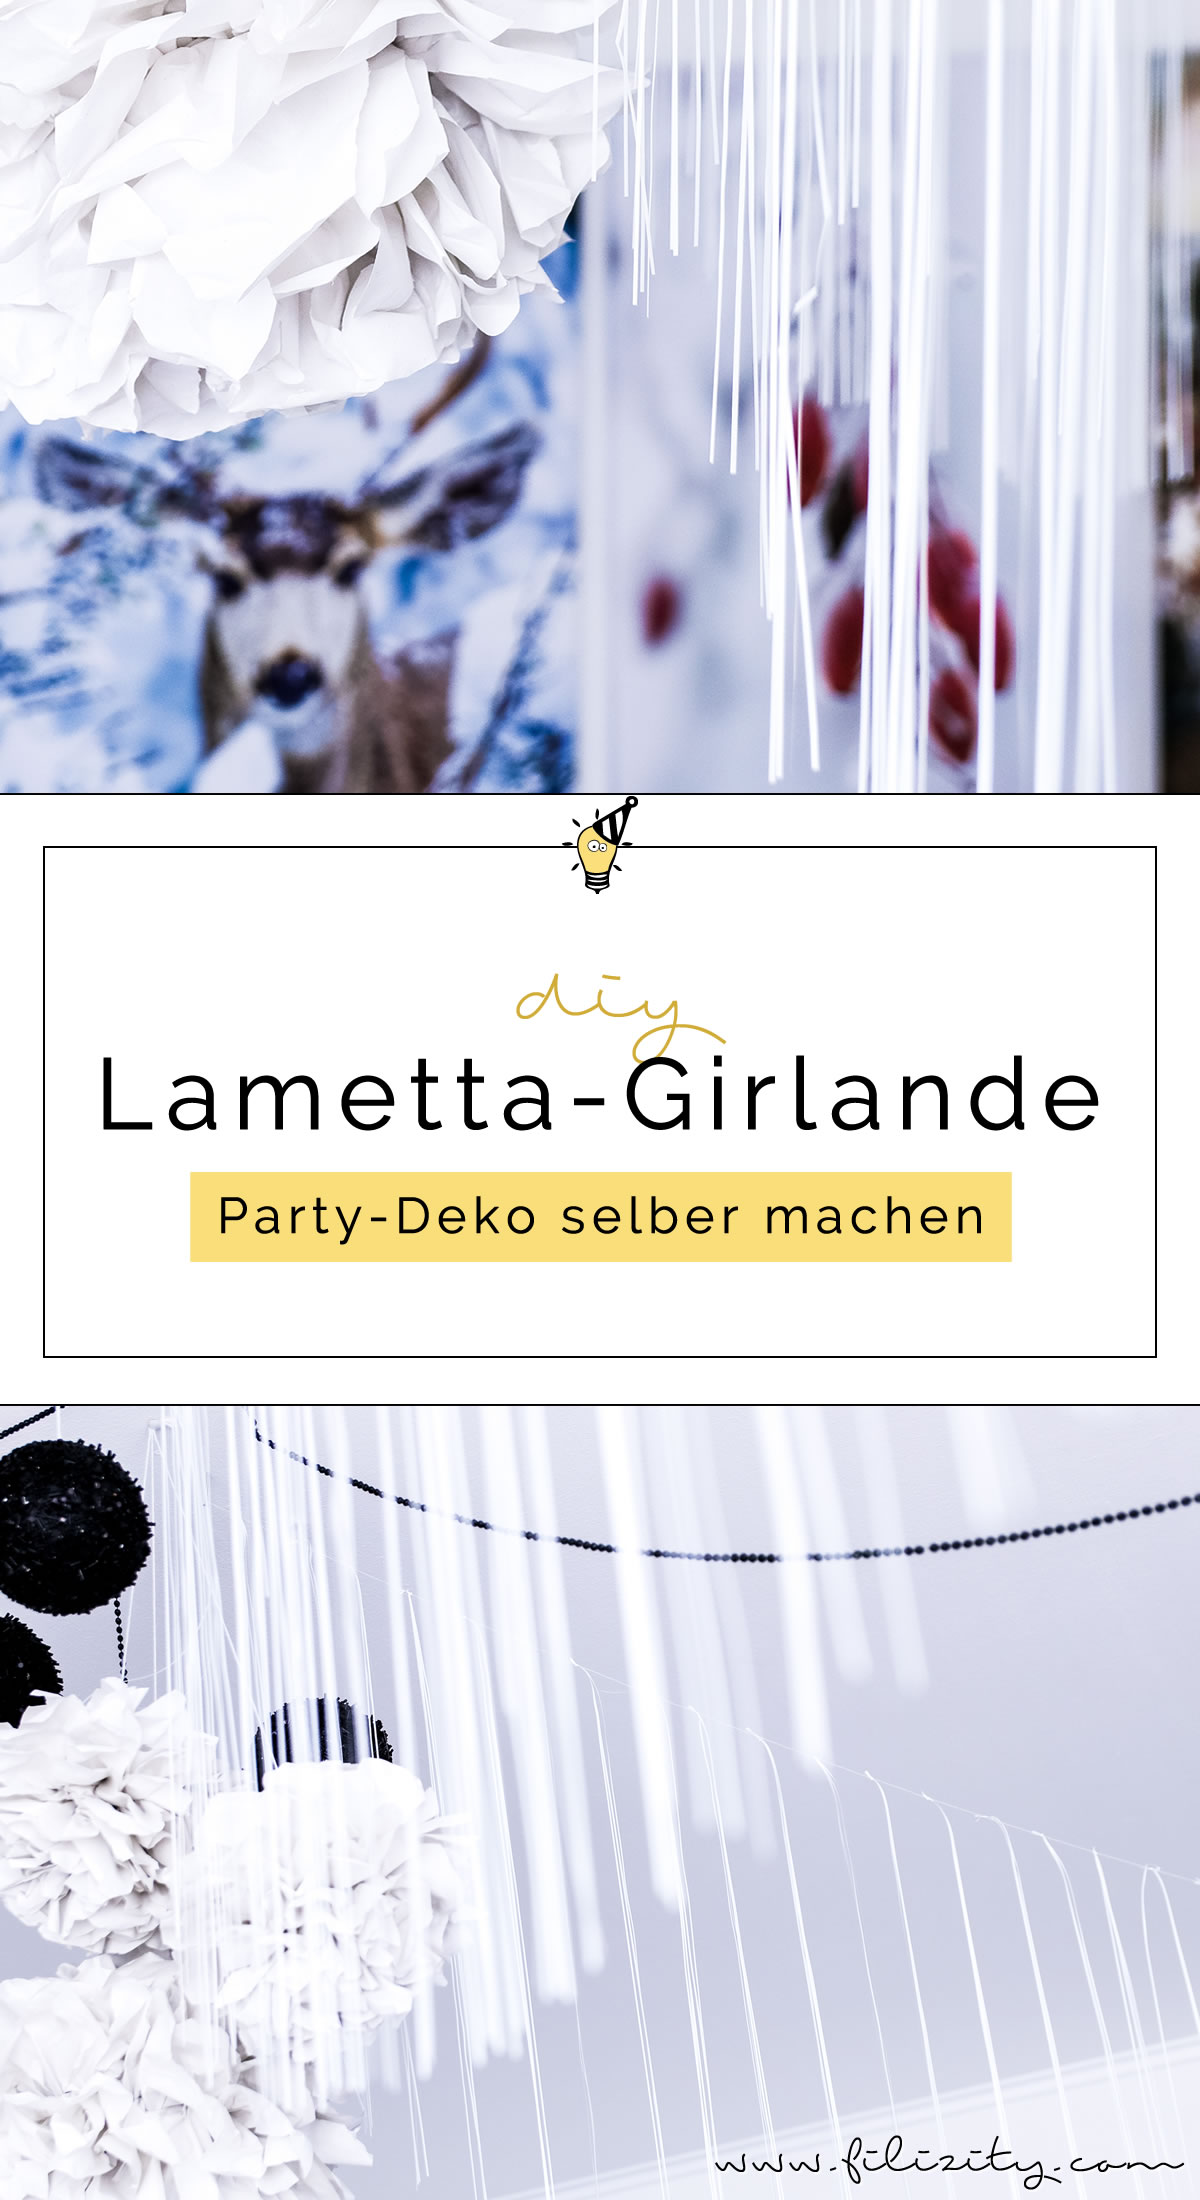 Diy party deko lametta girlande basteln - Party deko berlin ...